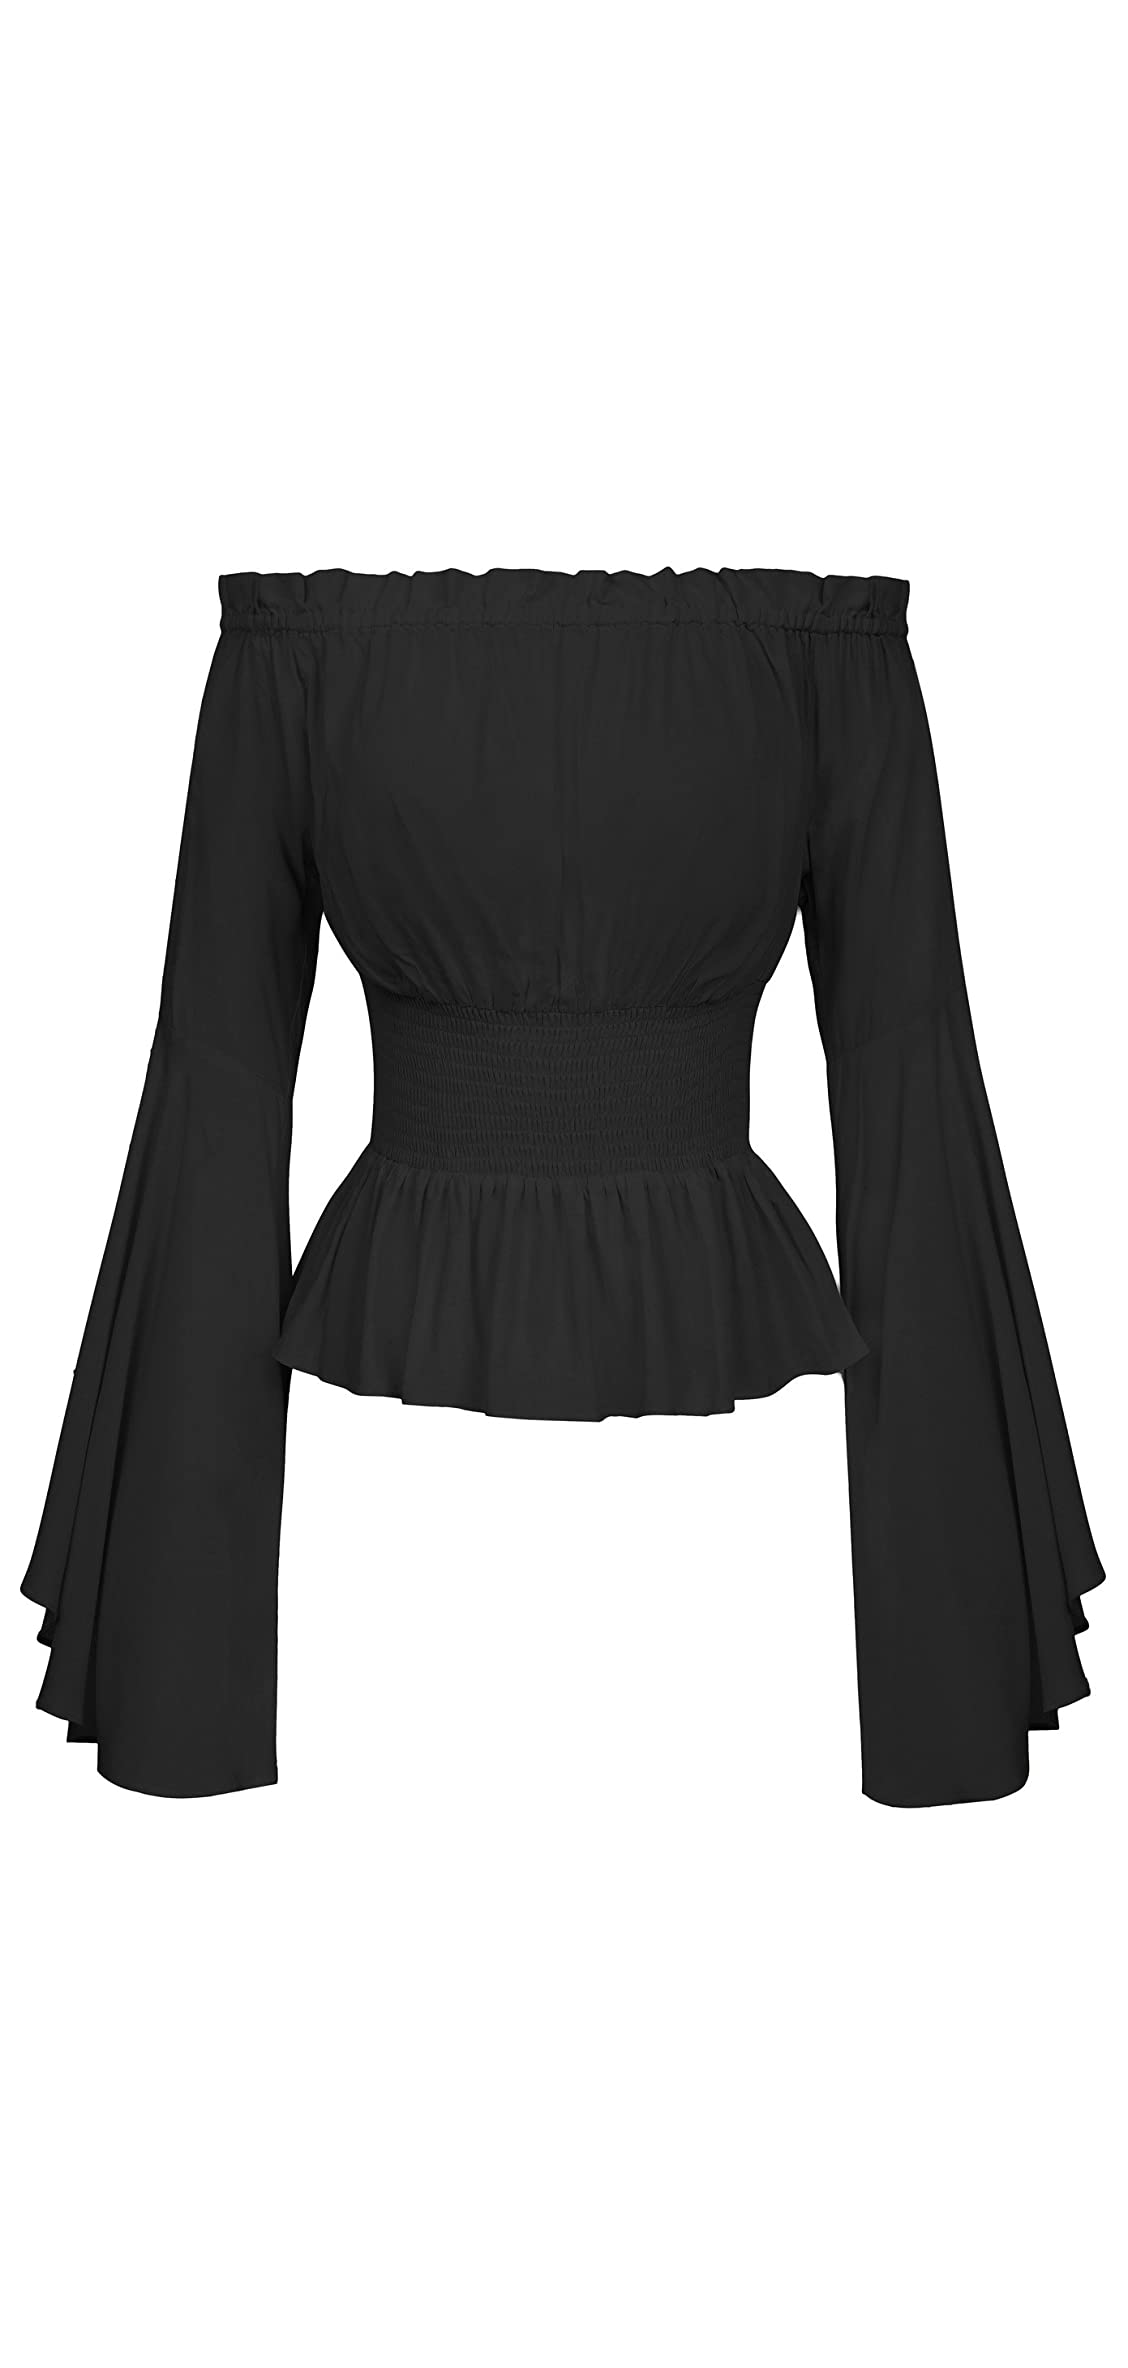 Womens Renaissance Gothic Blouse Bell Sleeves Ruffle